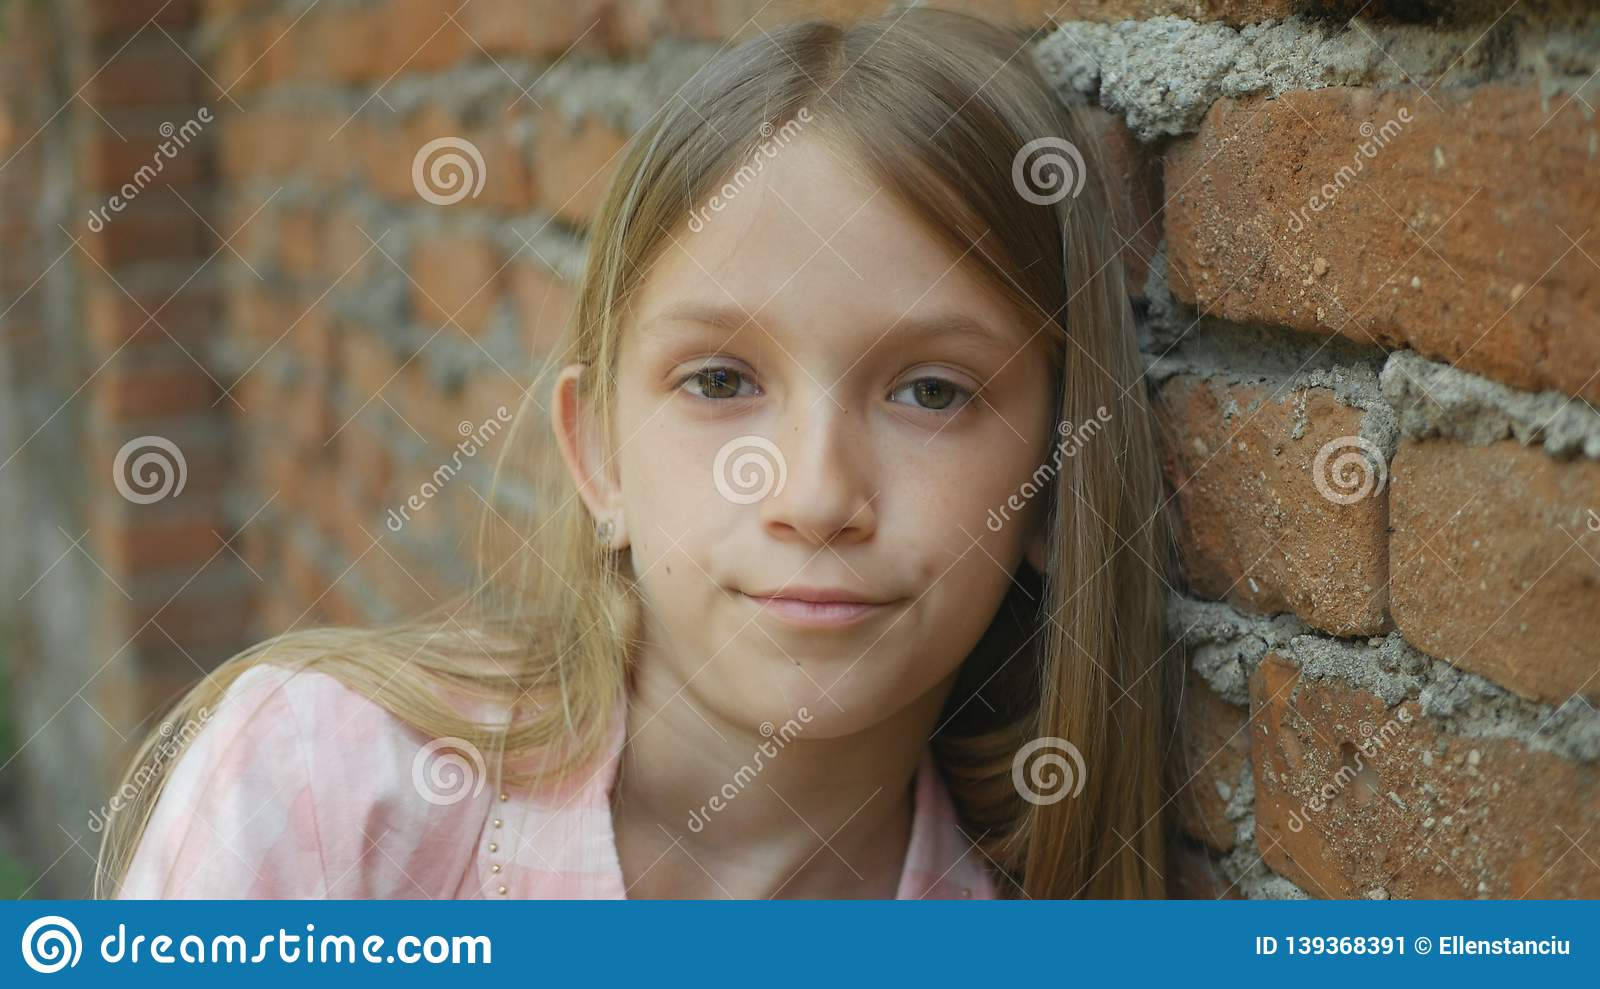 Unhappy Child Looking in Camera, Sad Girl Portrait, Depressed Bored Kid Face